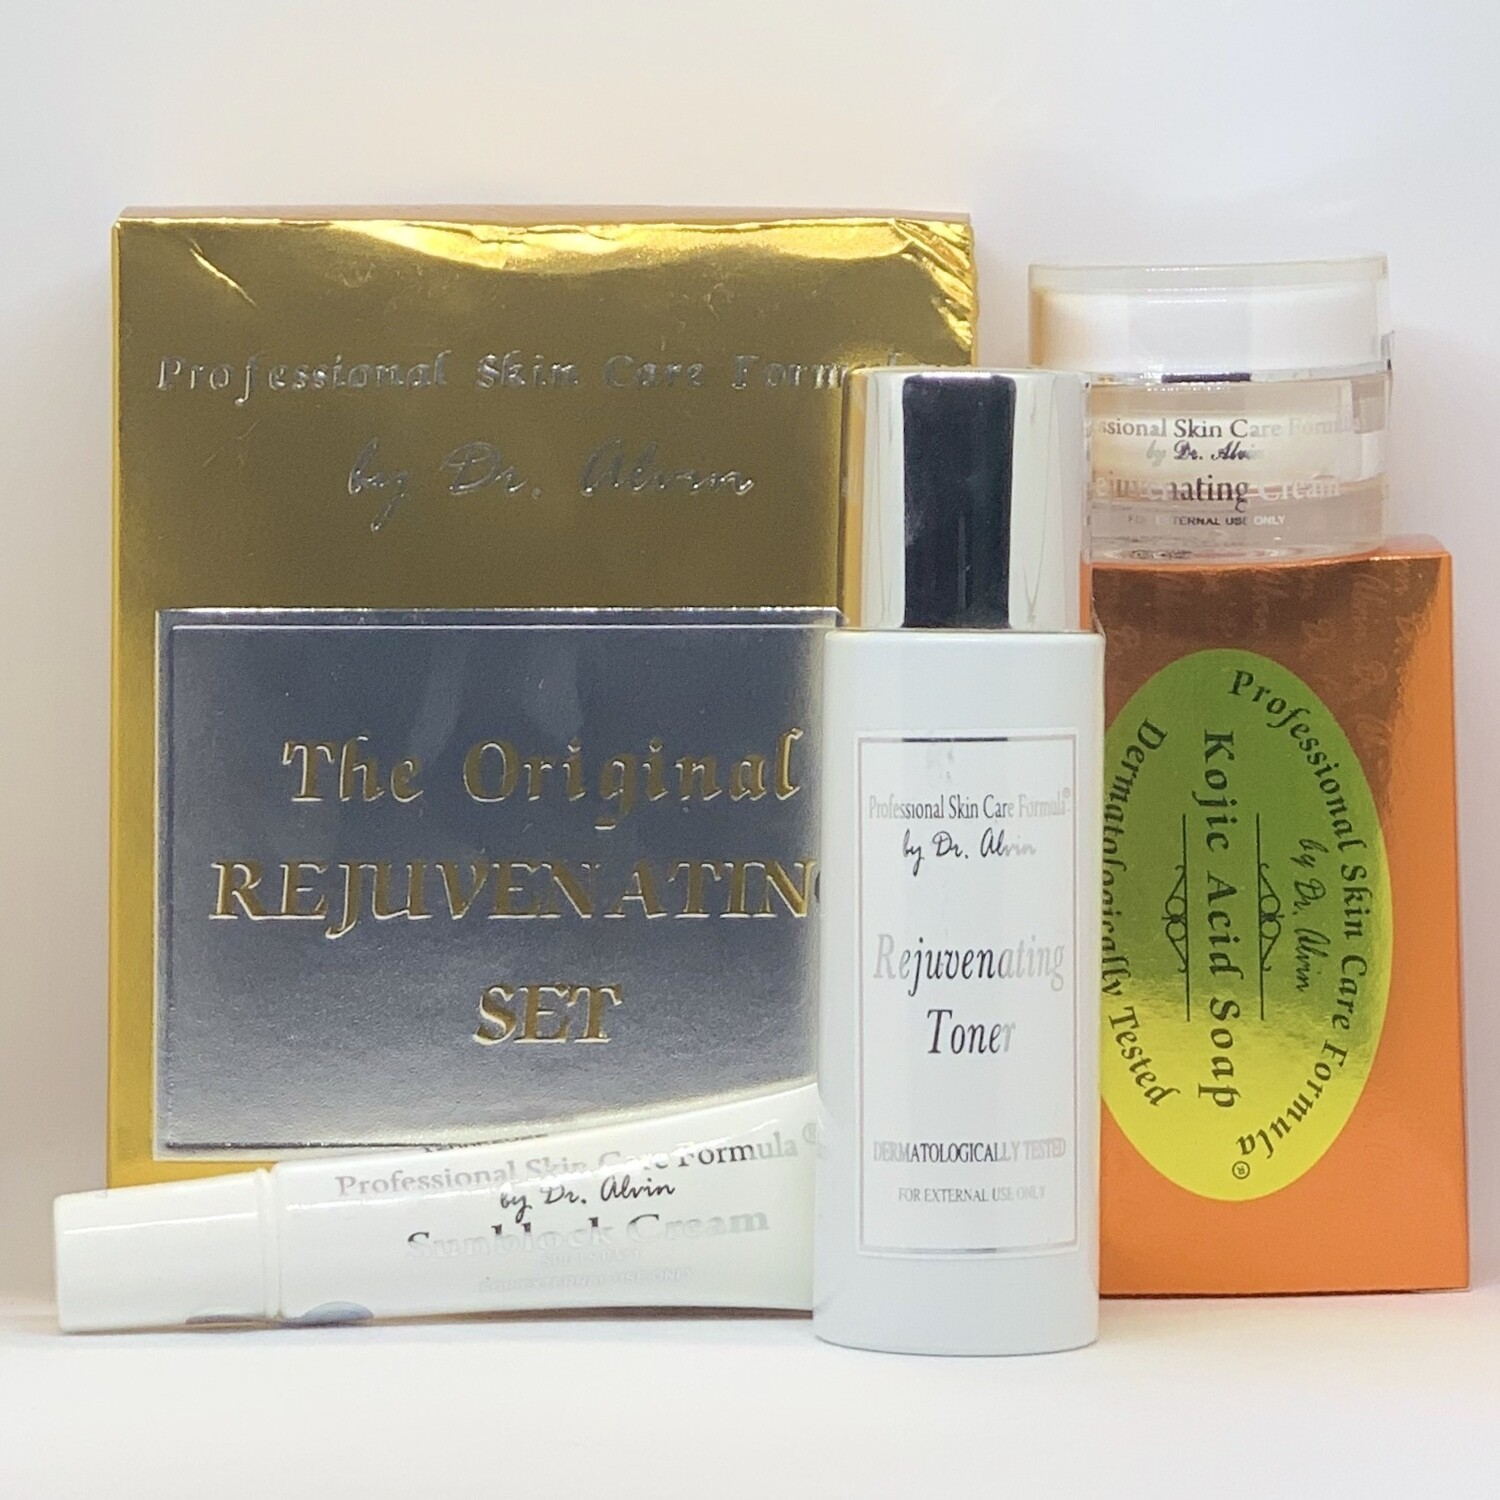 Rejuvenating Set Professional Skin Care Formula By Dr Alvin